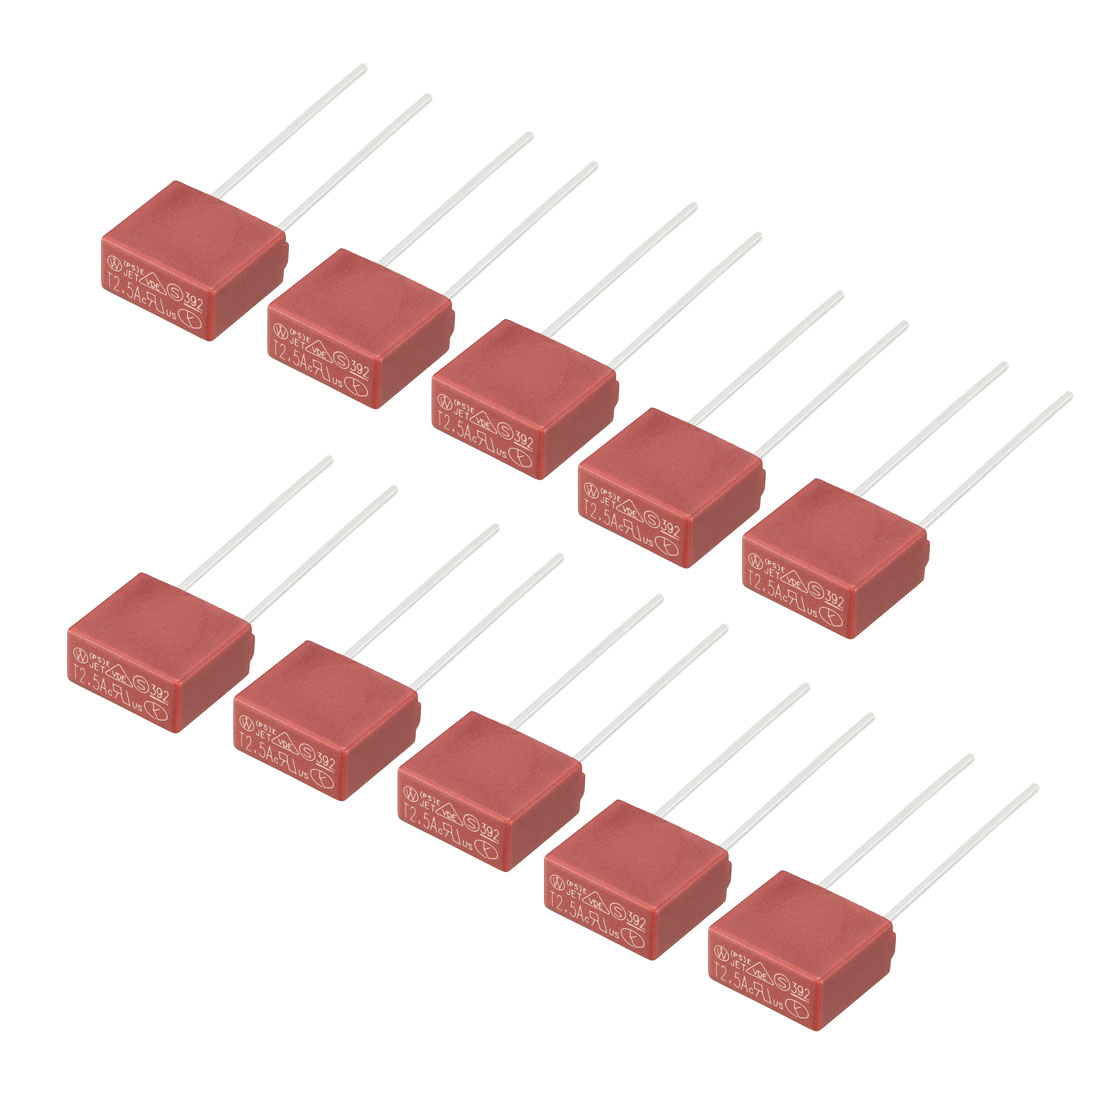 10Pcs DIP Mounted Miniature Square Slow Blow Micro Fuse T2.5A 2.5A 250V Red - image 4 de 4